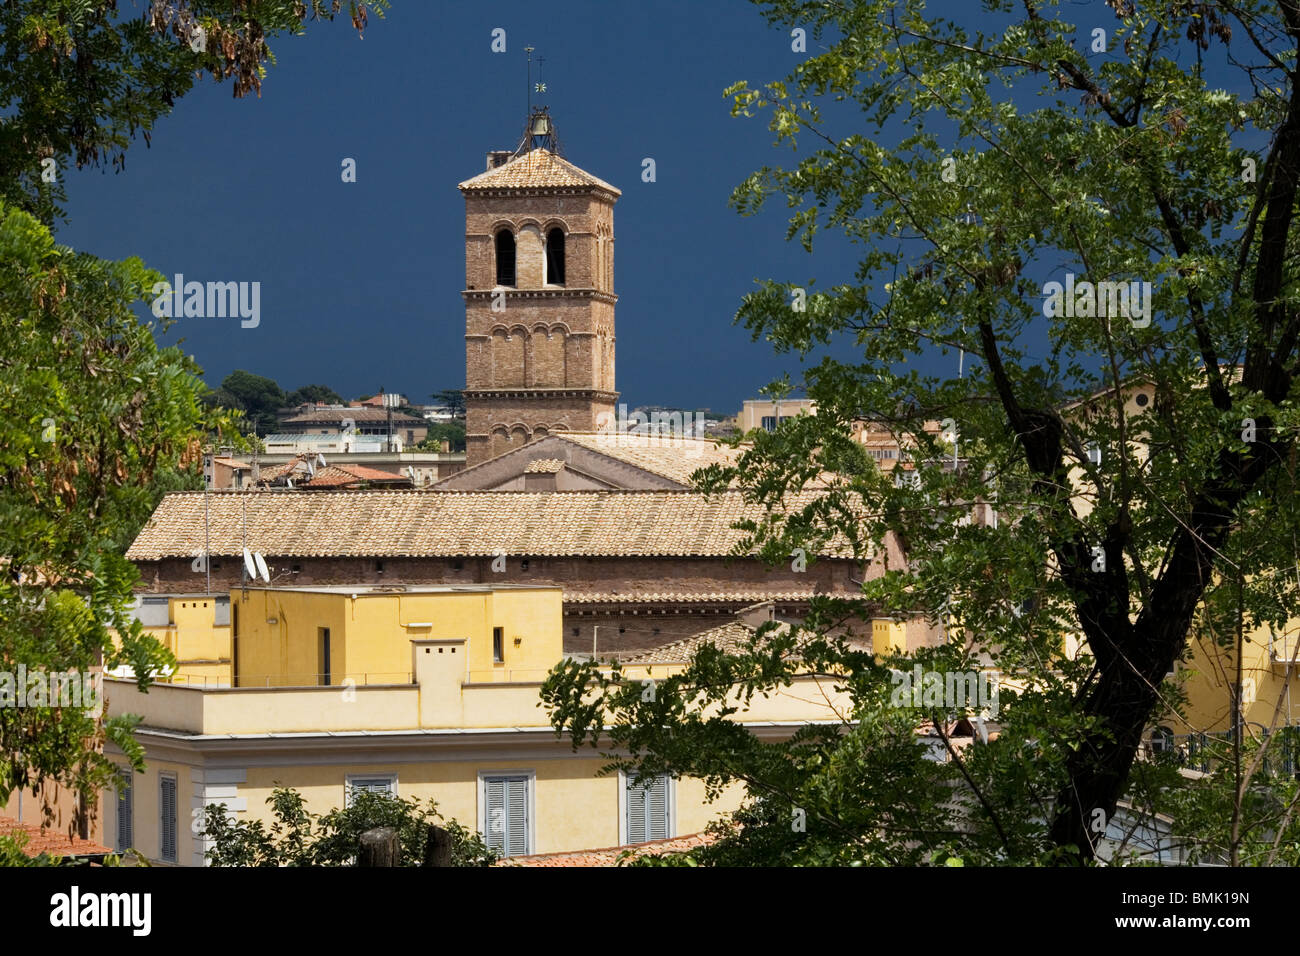 Townscape at Monte Gianicolo, Rome, Italy - Stock Image